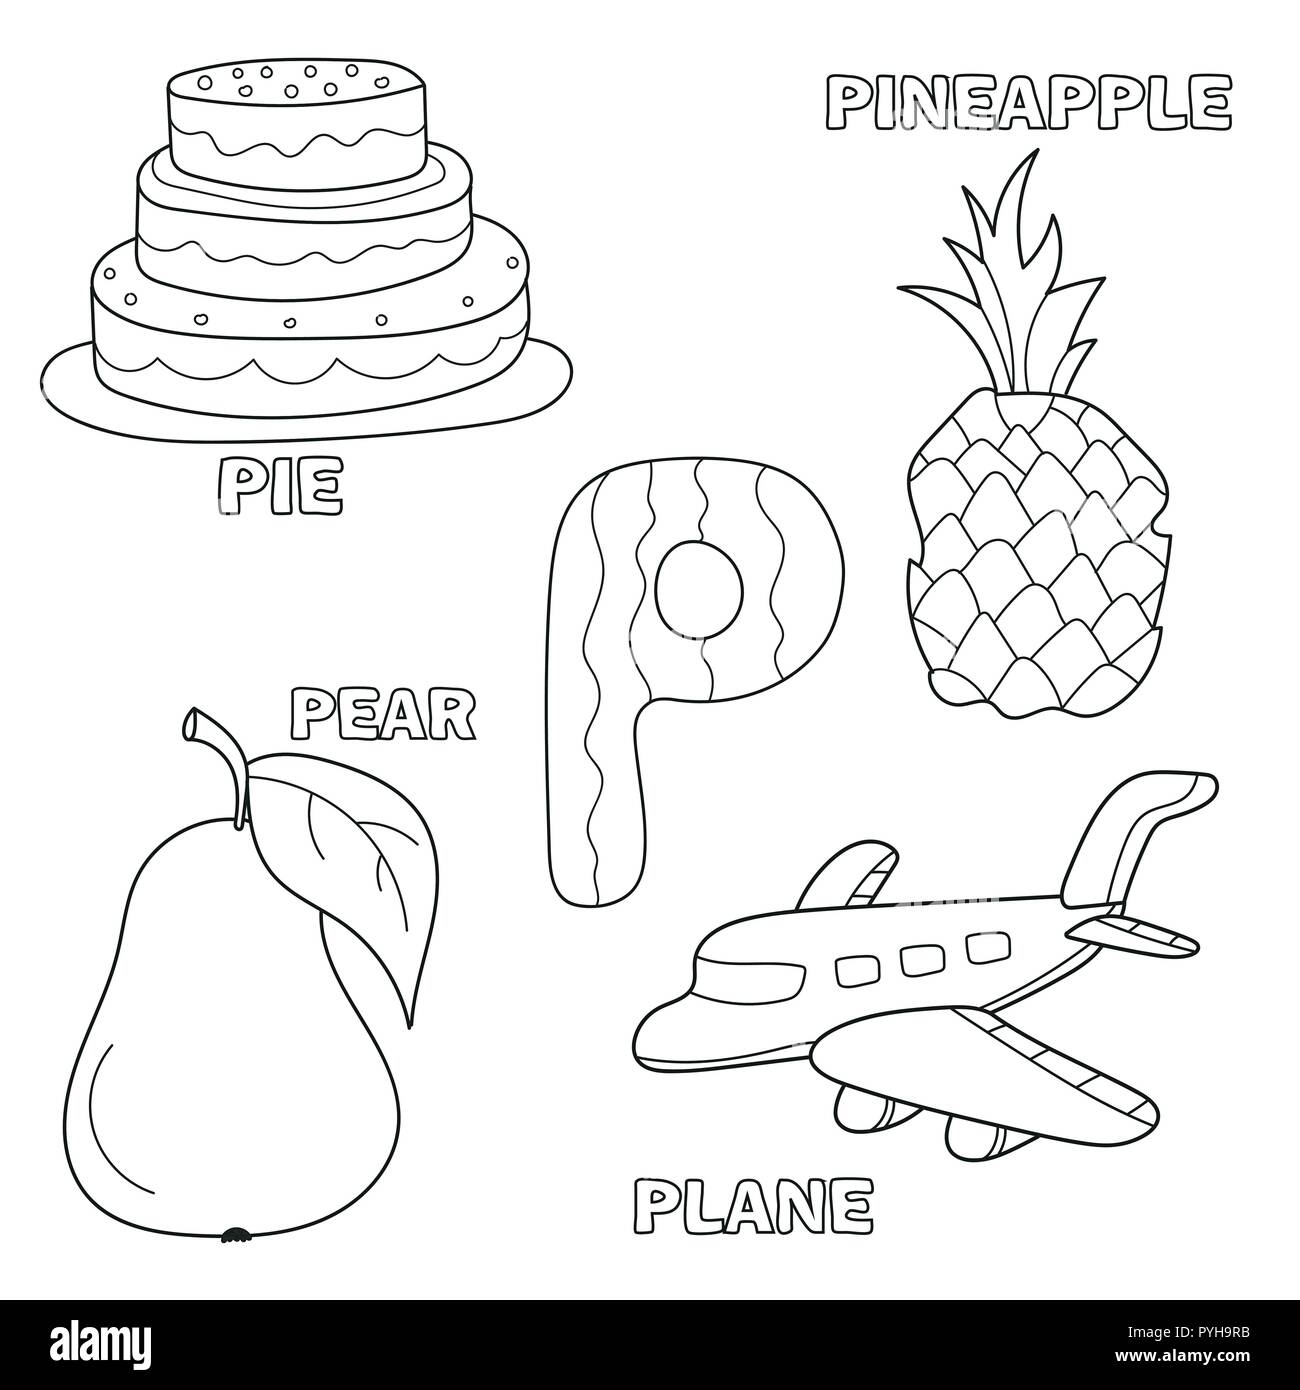 Easy To Color Letter P Coloring Pages